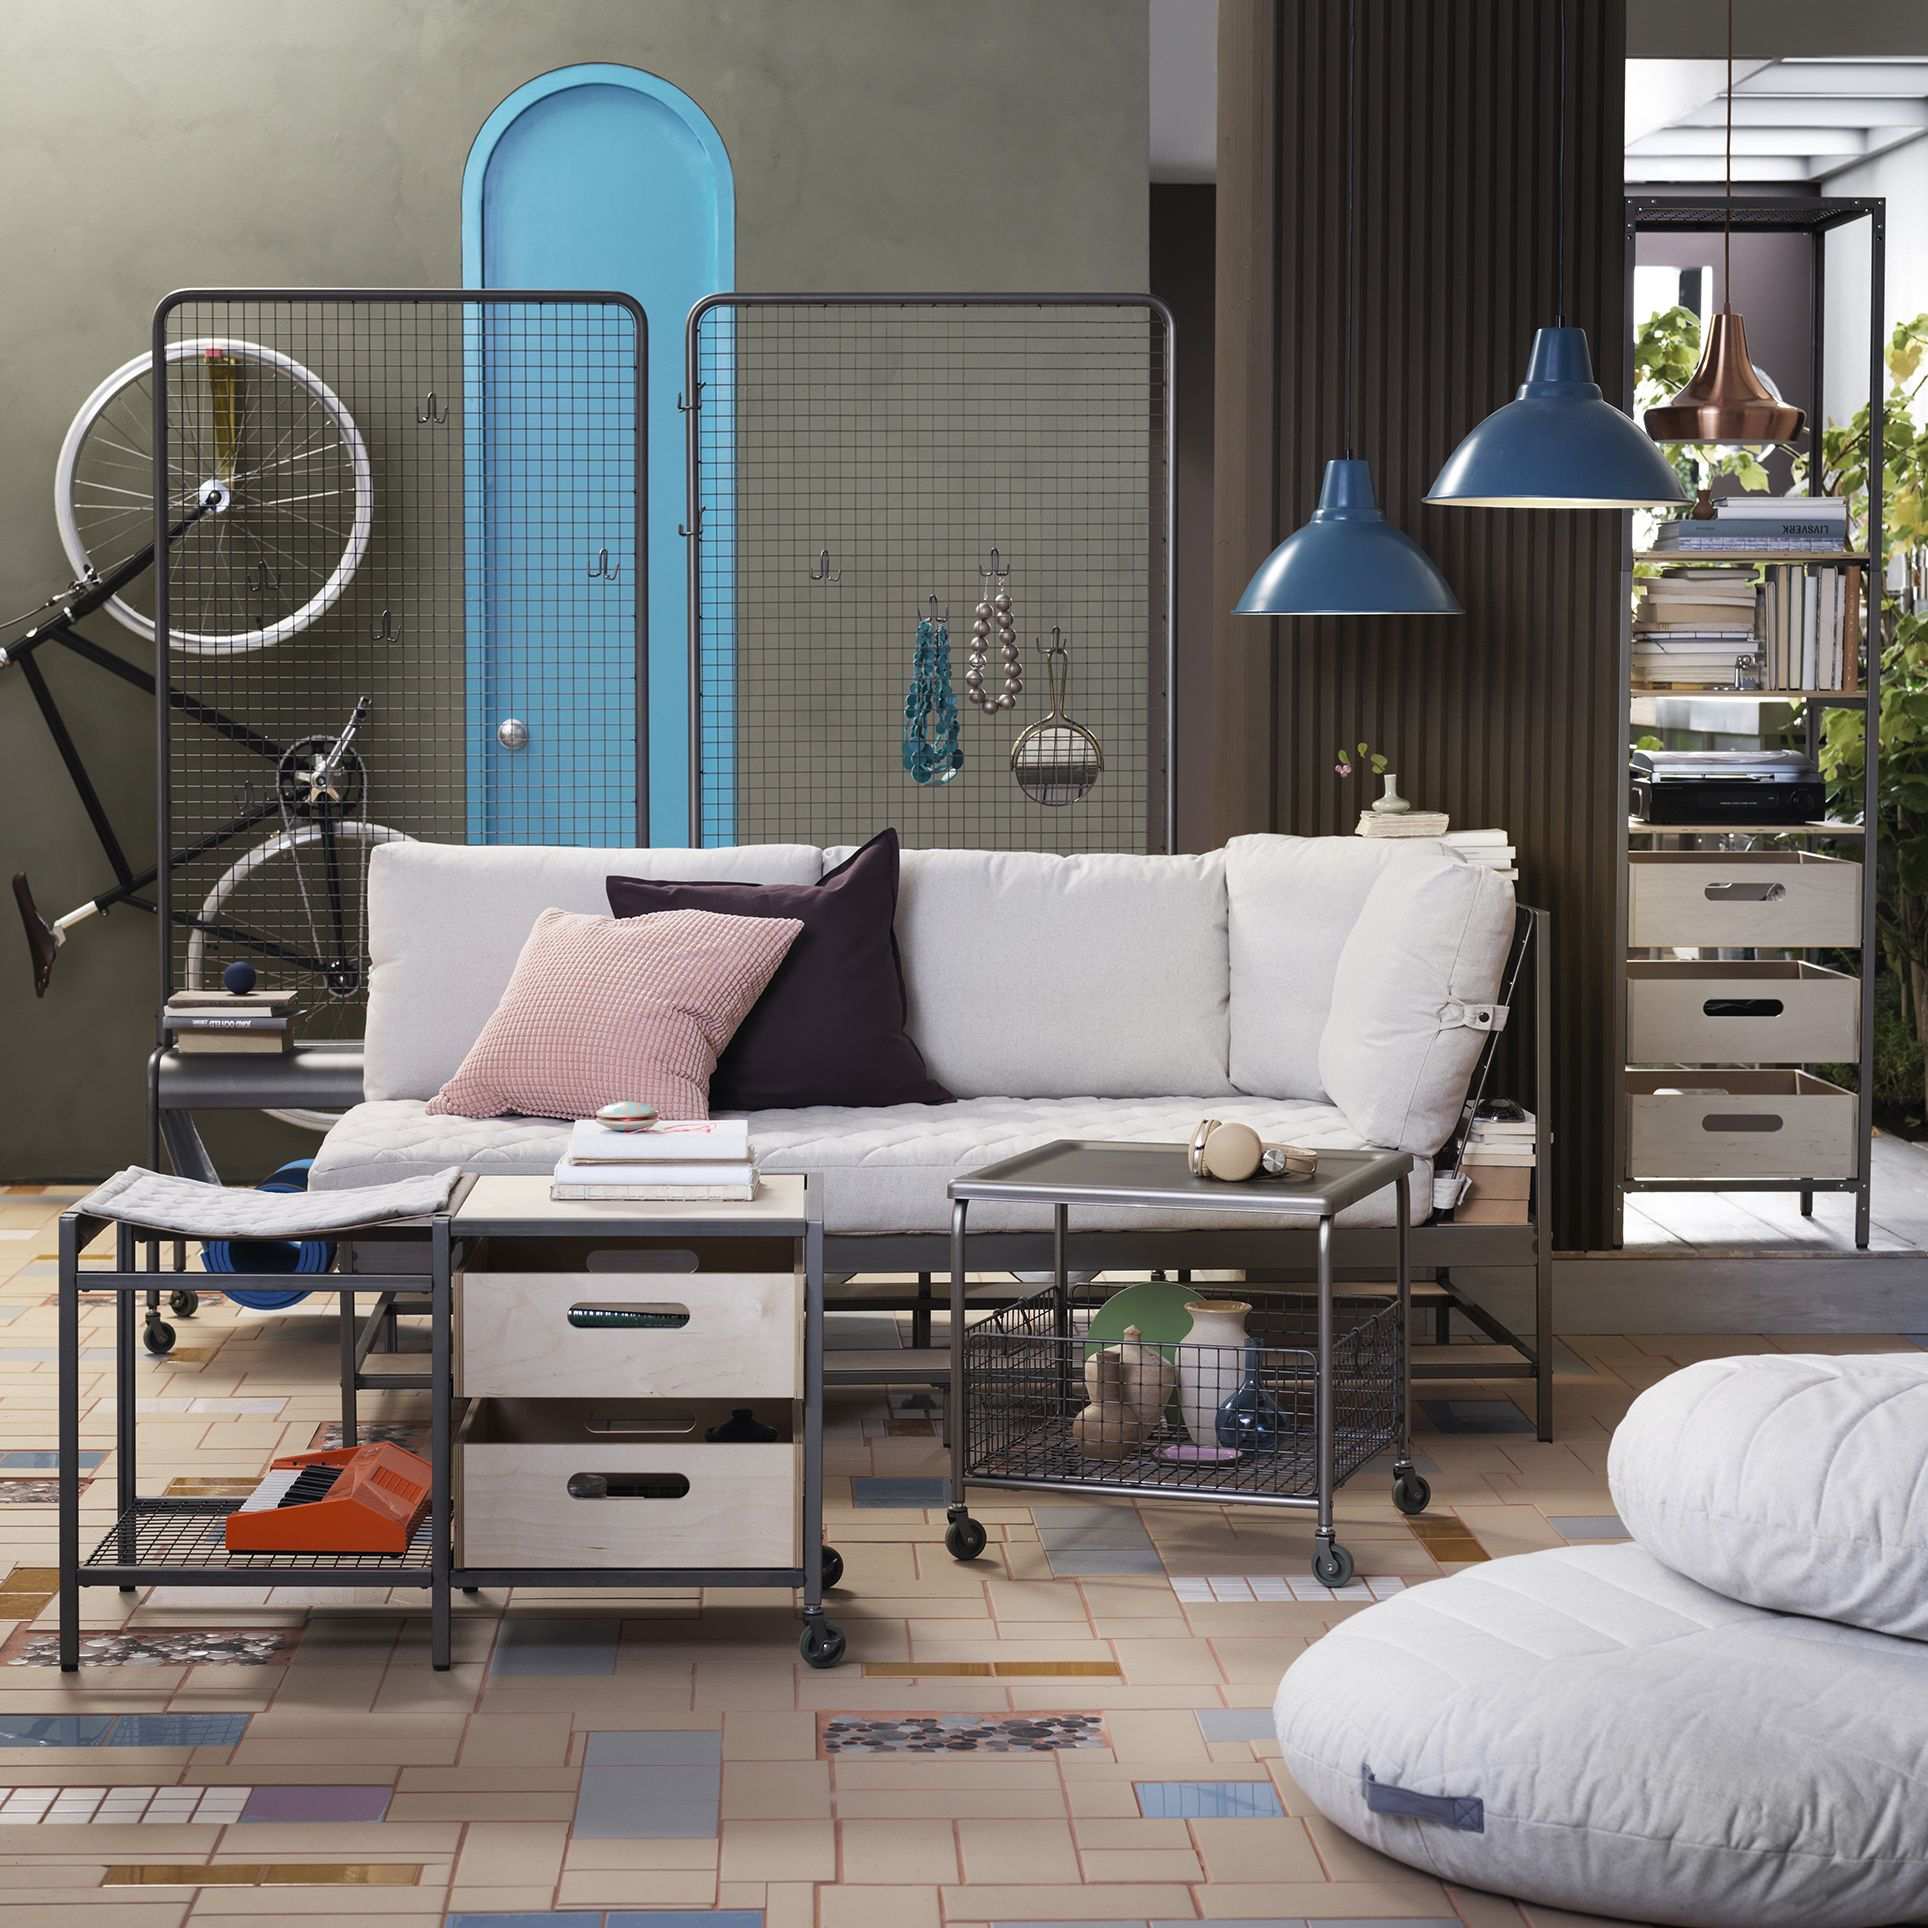 Ikea veber d serien nyheder fra ikea pinterest ikea hack living spaces and lofts - Recliners small spaces collection ...